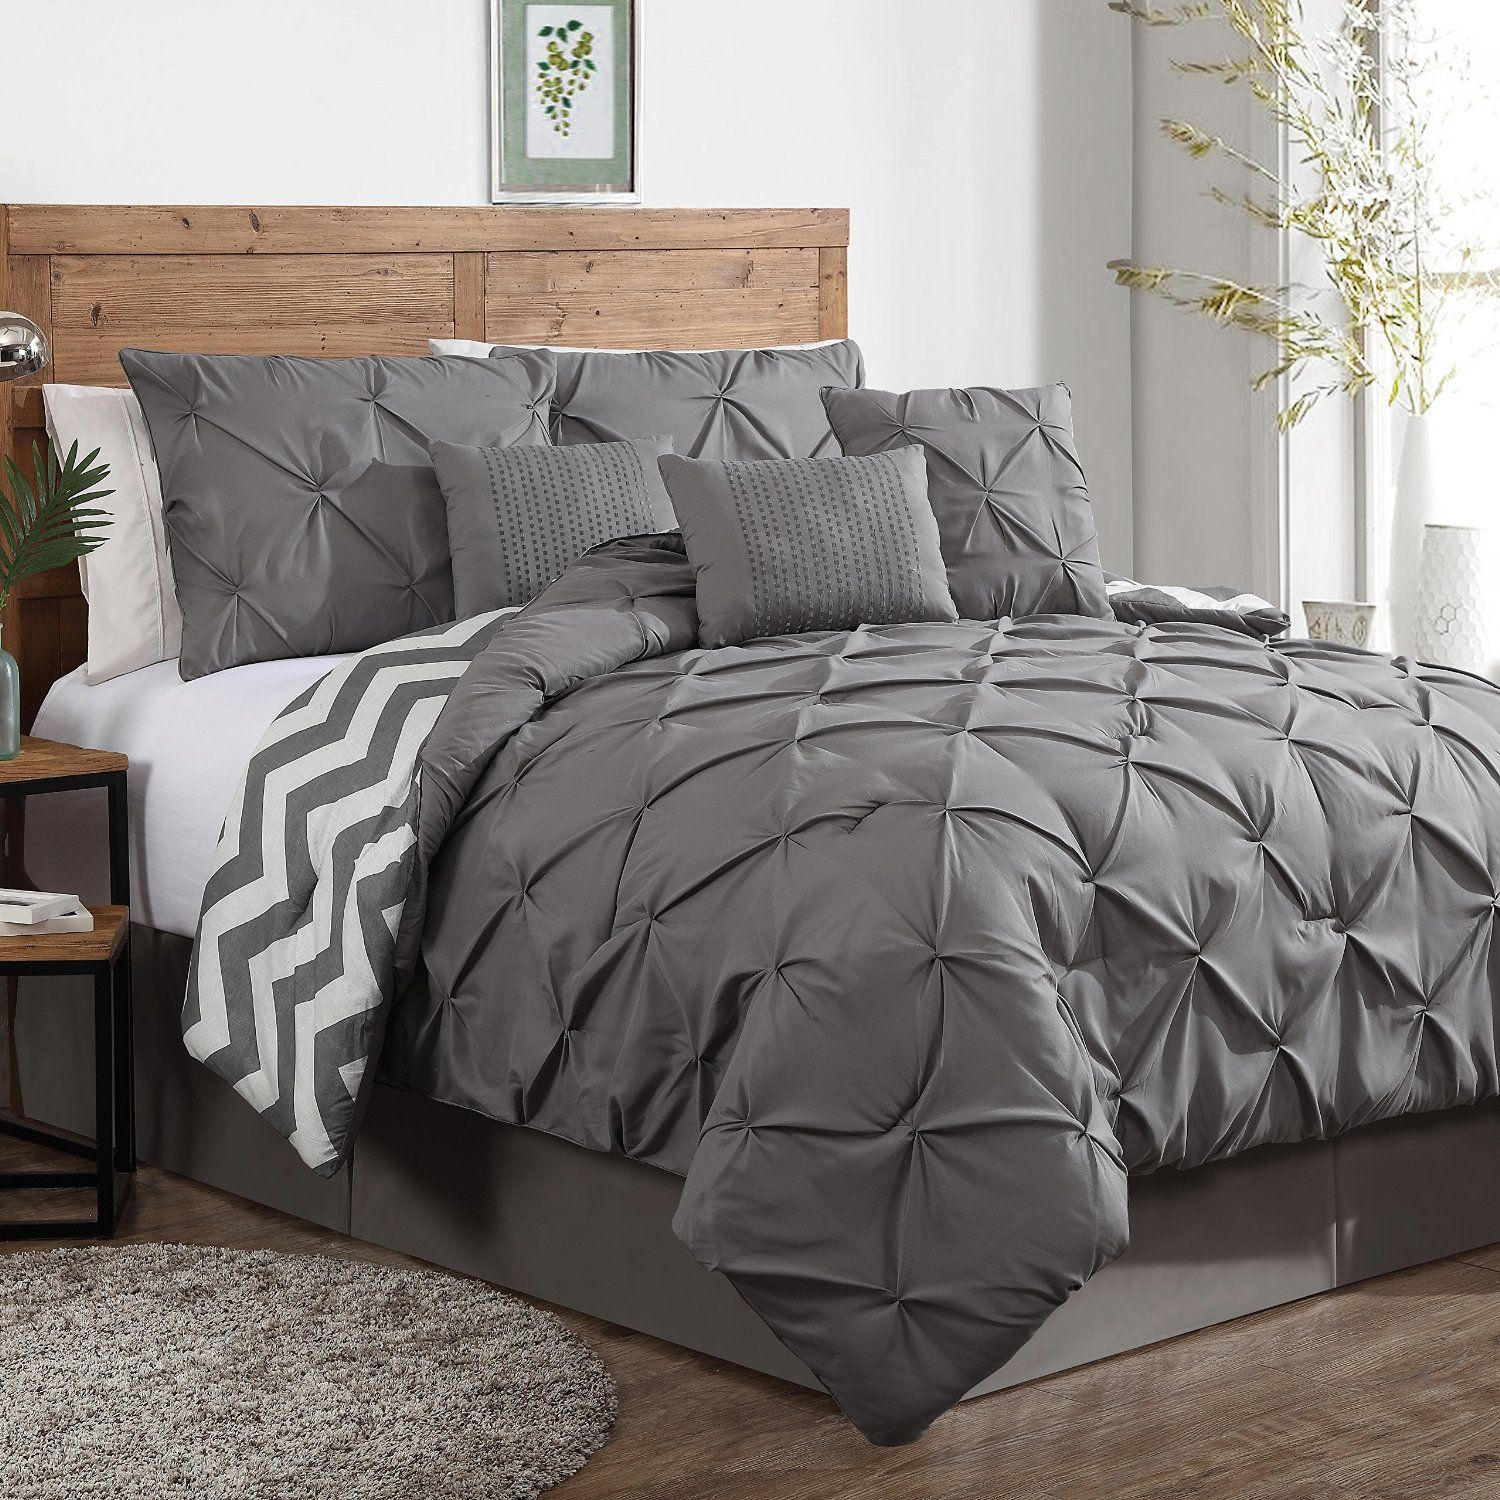 Geneva Home Fashion 7Piece Ella Pinch Pleat Comforter Set